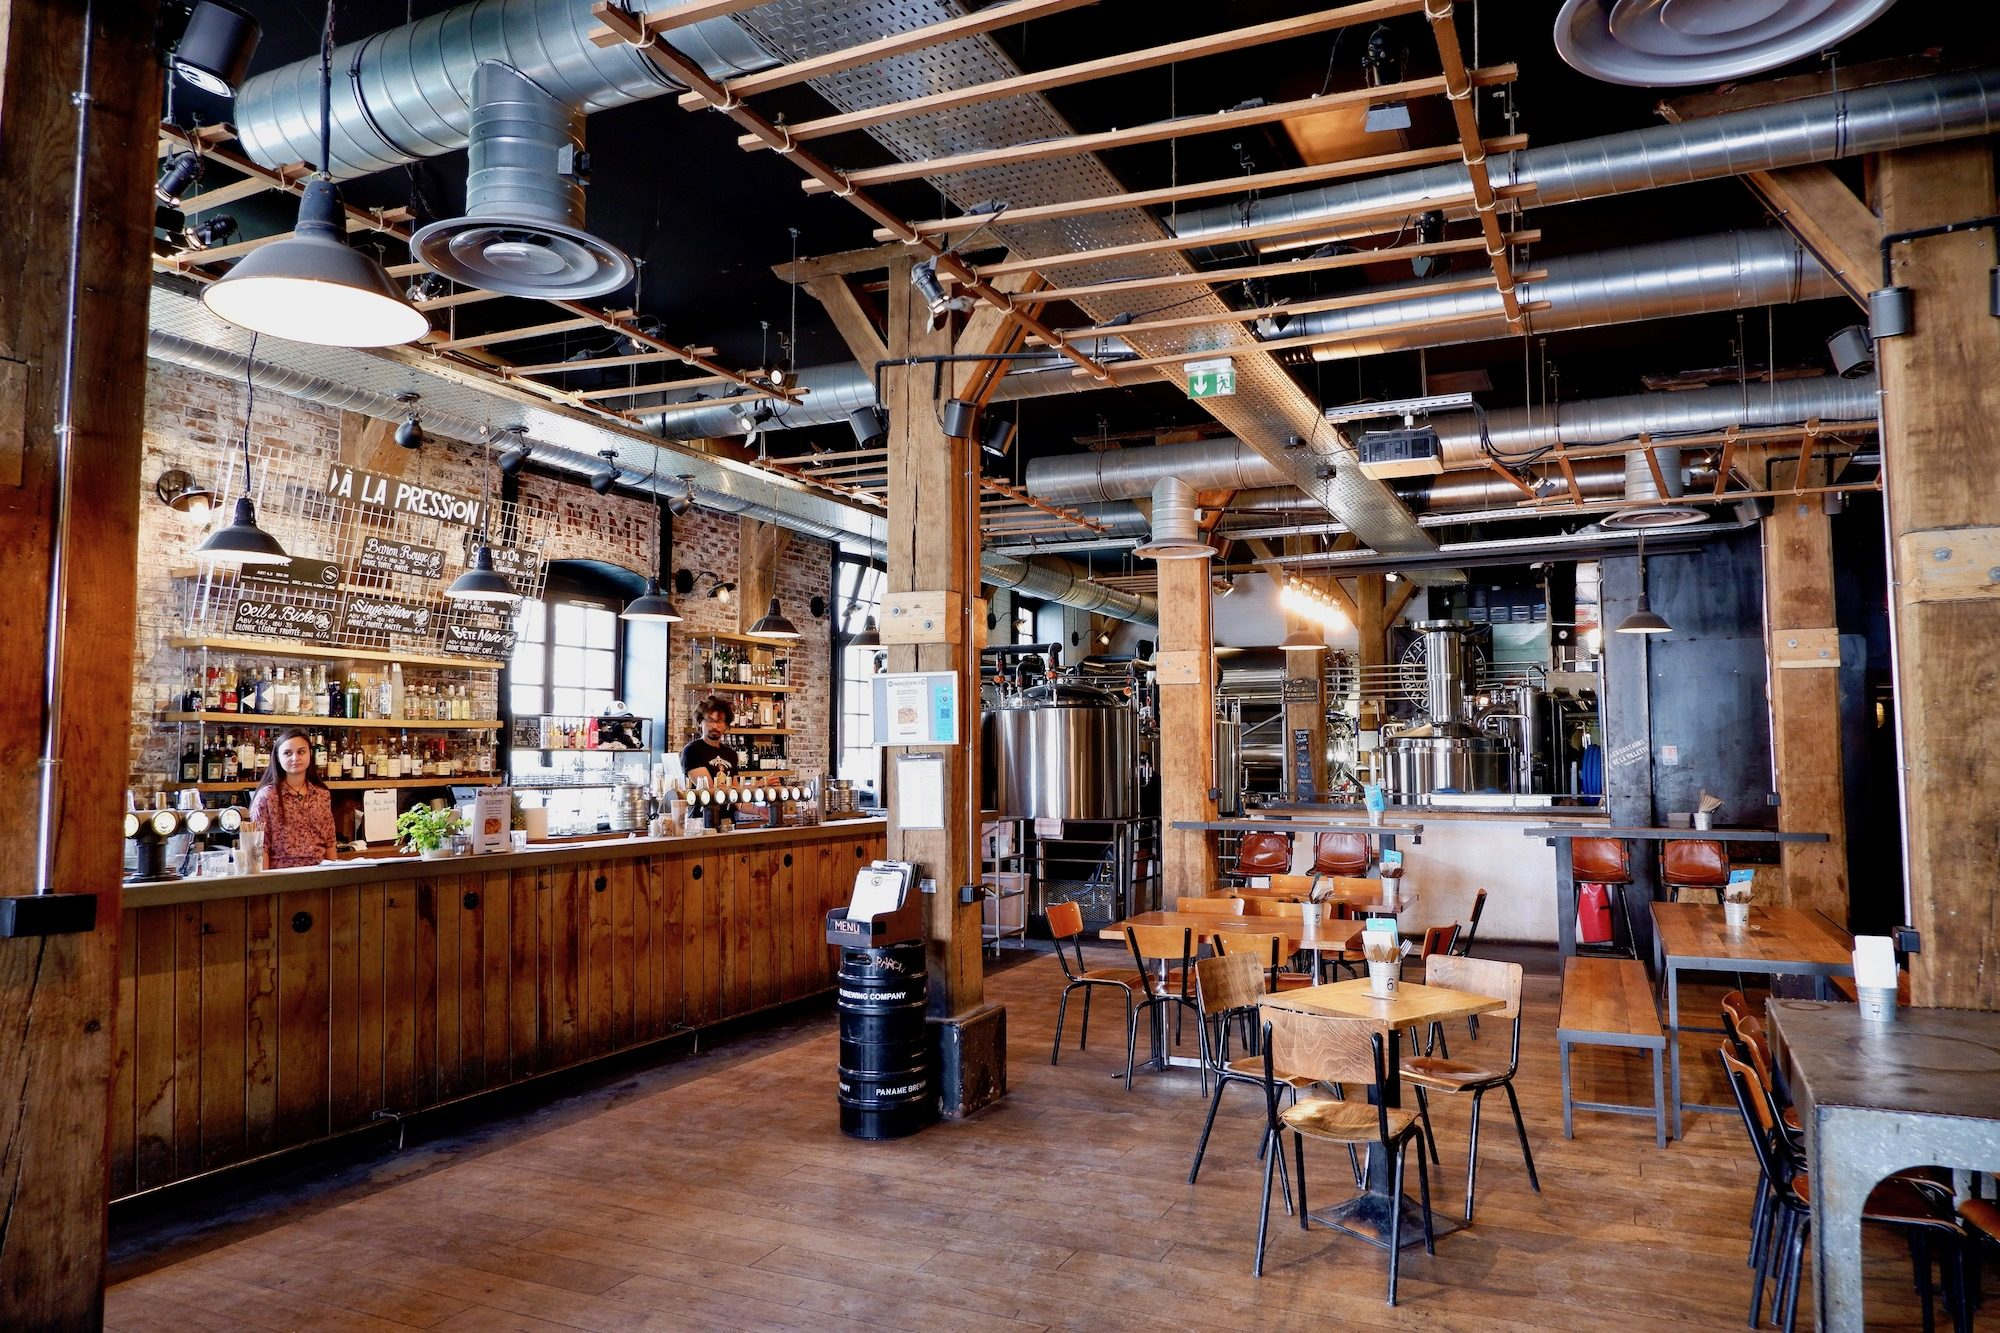 The industrial interiors of Paris Brewing Company on the Canal de l'Ourcq.